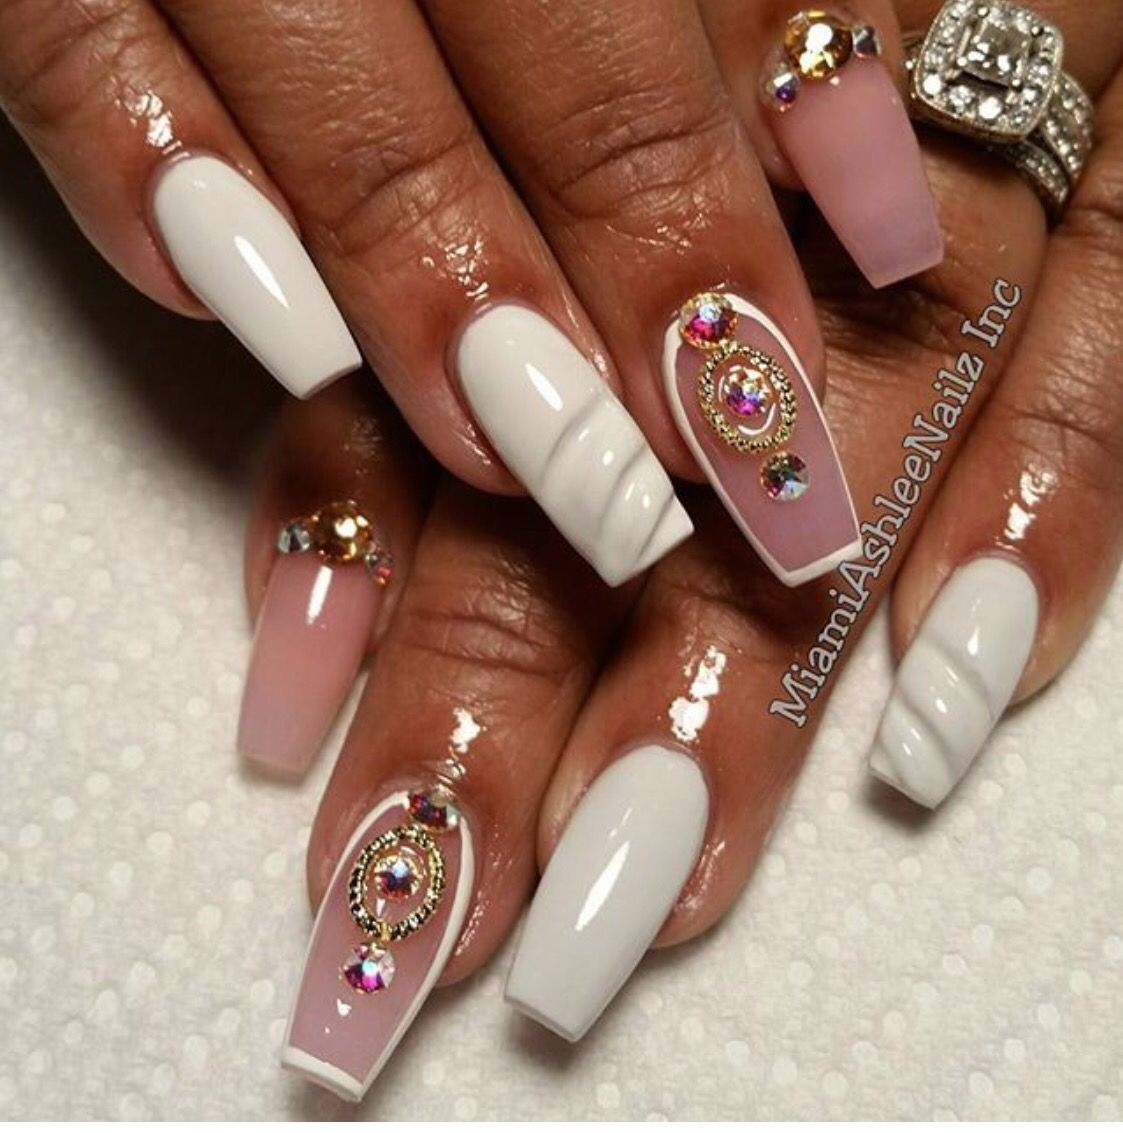 Manicure · Nails On FleekDope ... - Pin By Shanika K On Nail HeART Pinterest Dope Nails, Dope Nail